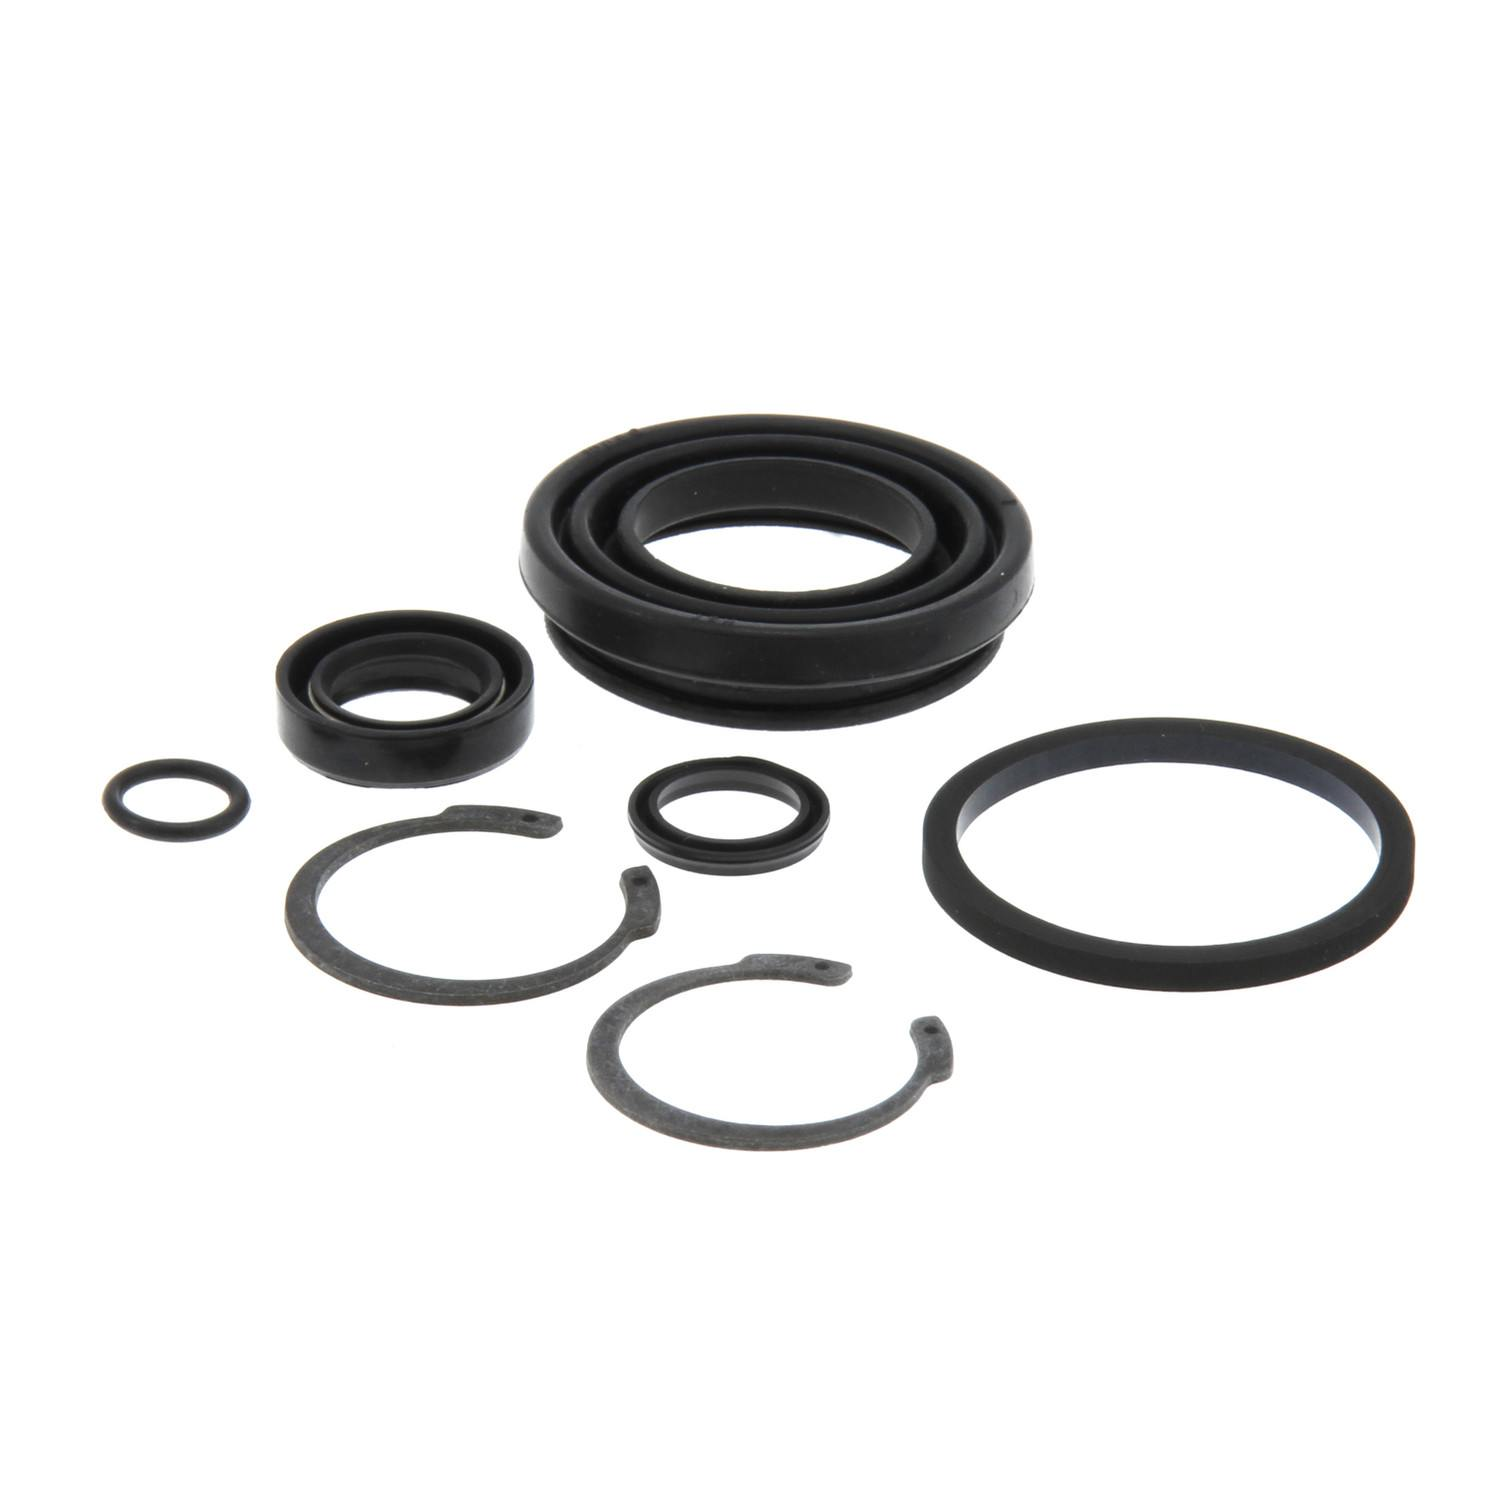 CENTRIC PARTS - Brake Caliper Repair Kit (Rear) - CEC 143.61005